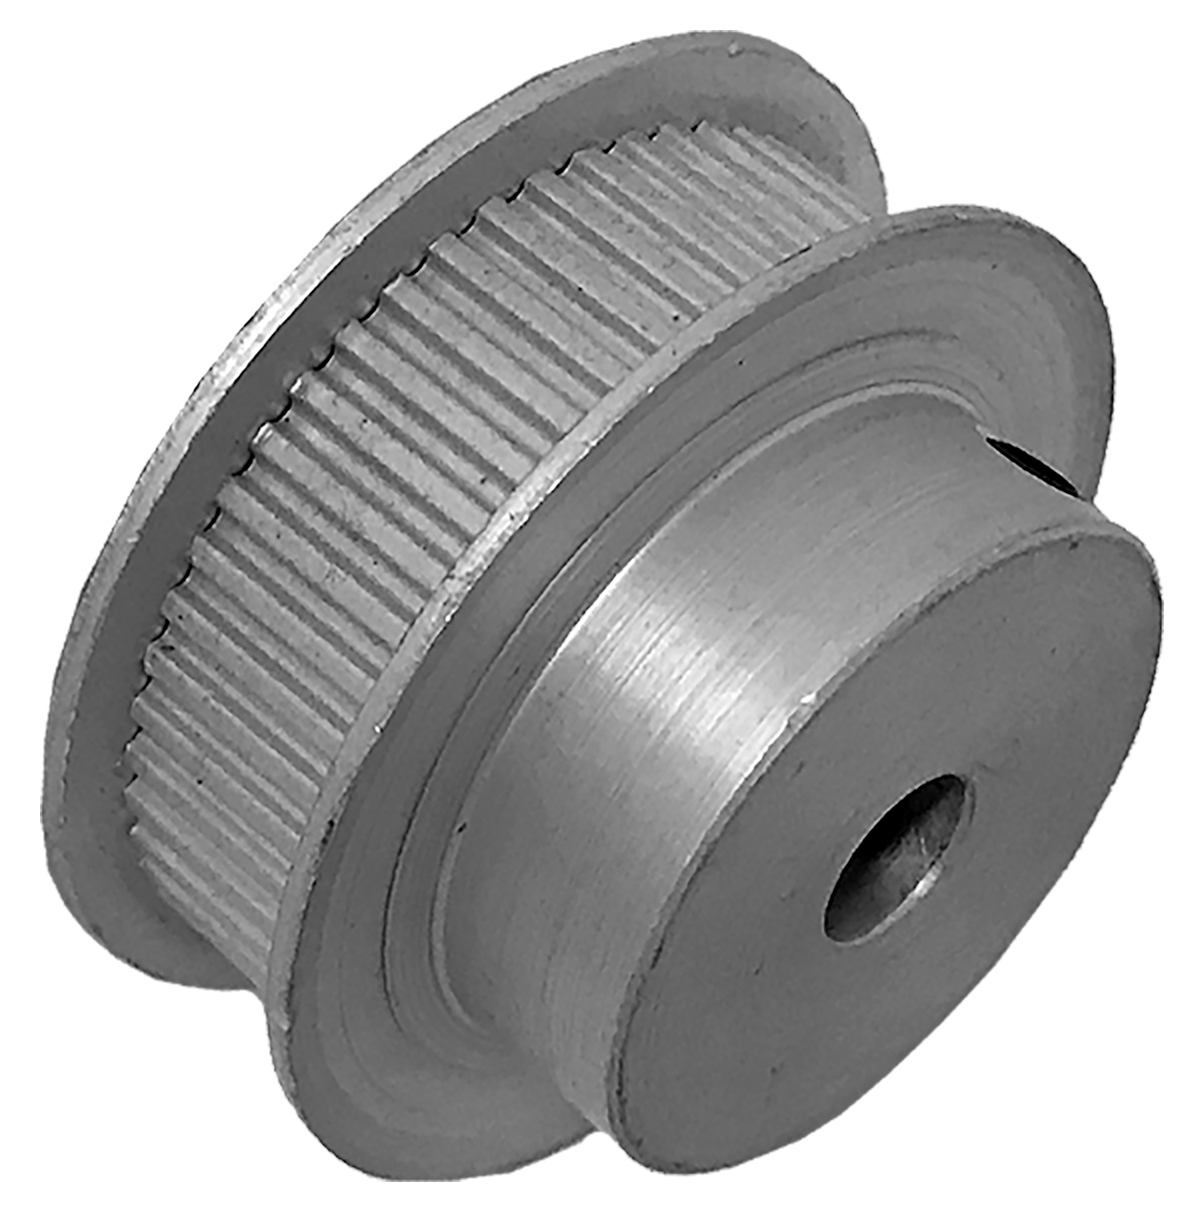 50LT312-6FA3 - Aluminum Imperial Pitch Pulleys